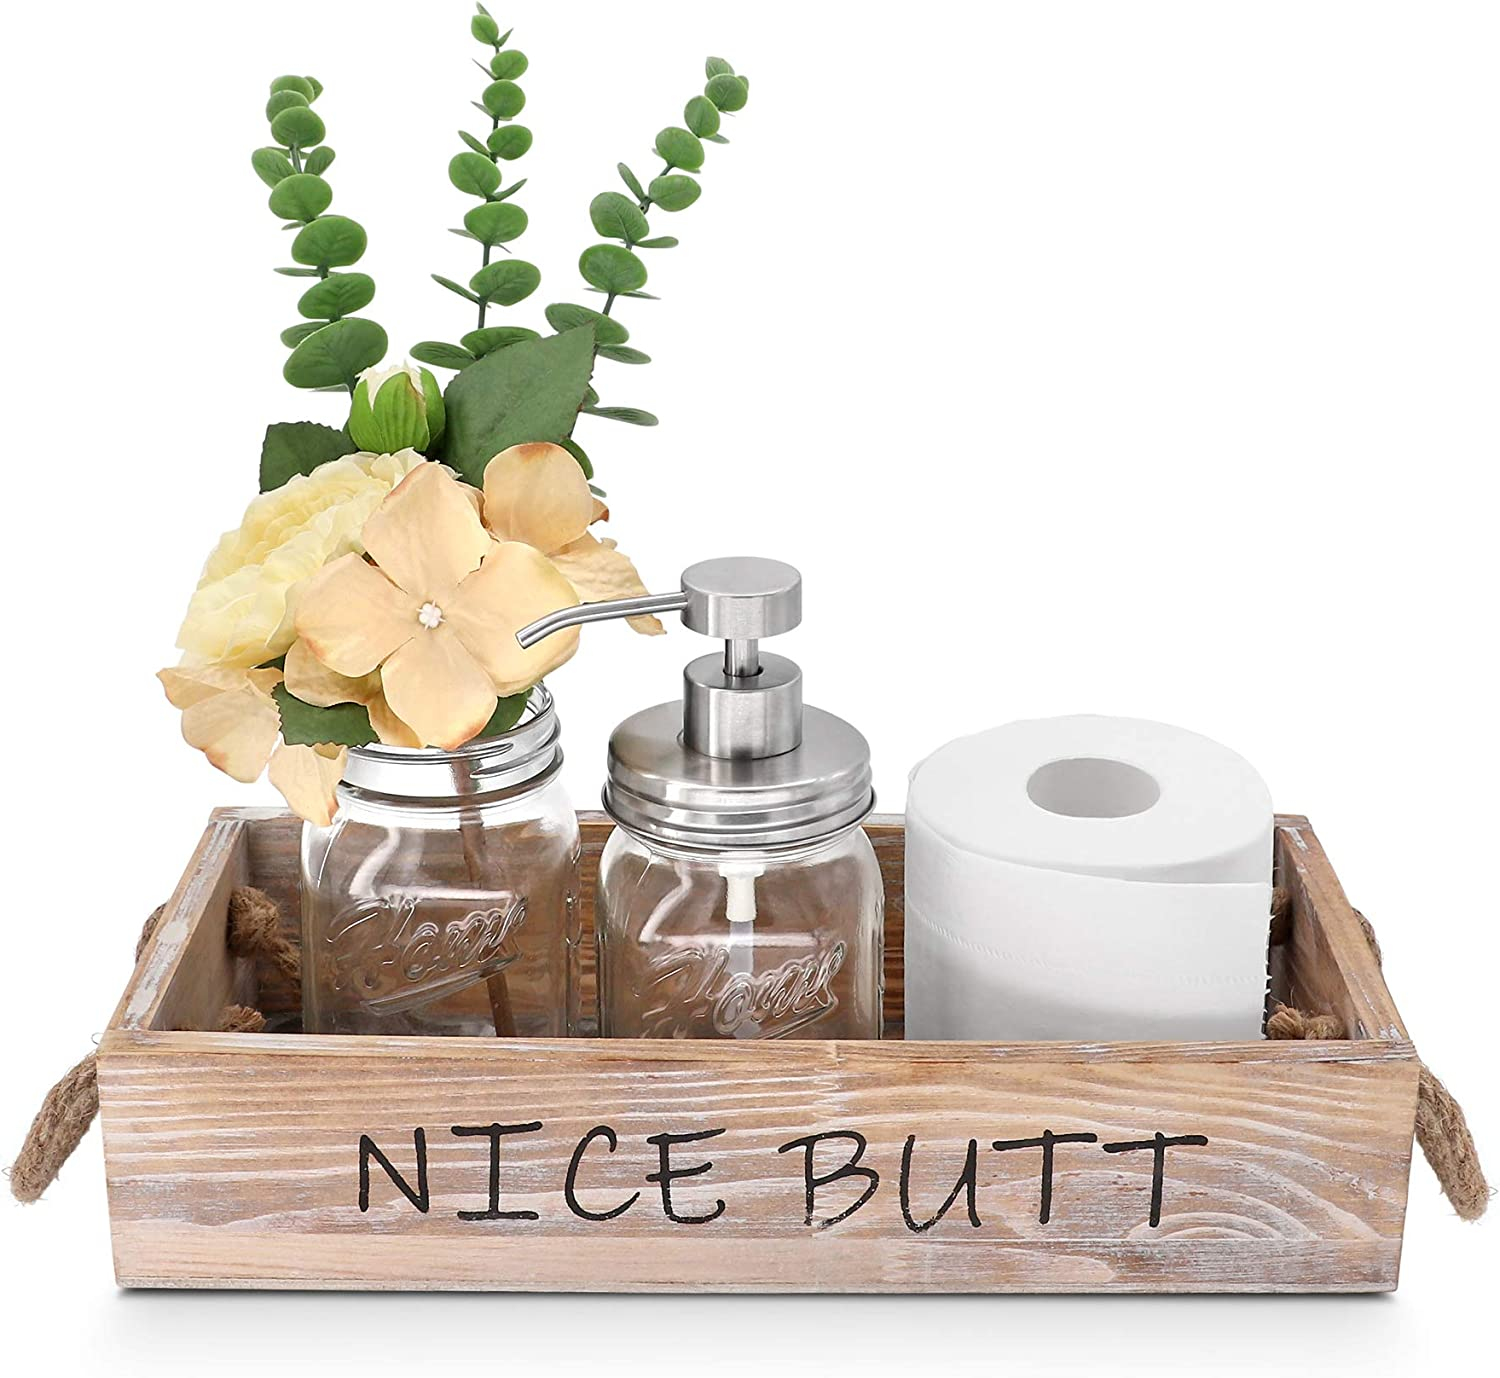 GBtroo Nice Butt Bathroom Decor Box- Rustic Wooden Toilet Paper Organizer Box with Mason Jar Soap Dispenser& Rose Flowers for Diaper Organizer,Toilet Paper Storage,Funny Gift, Medium Brown